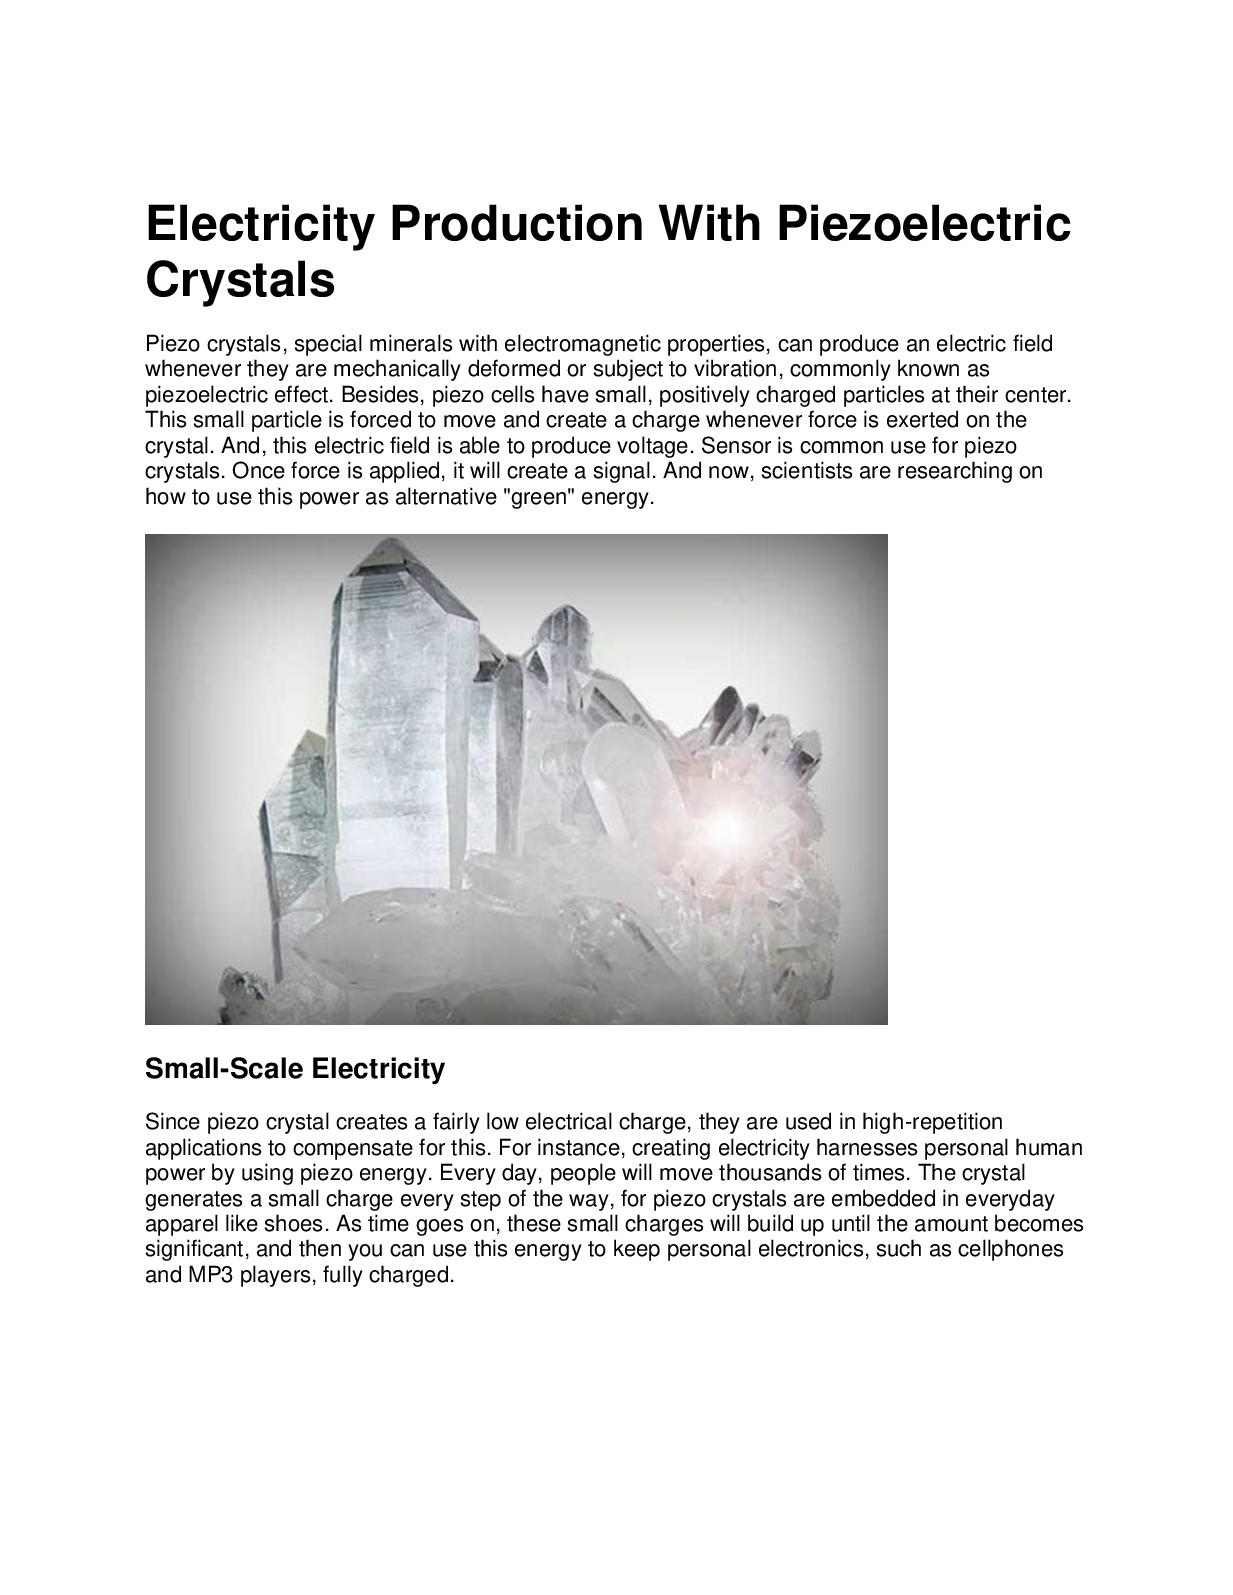 Calamo Electricity Production With Piezoelectric Crystals